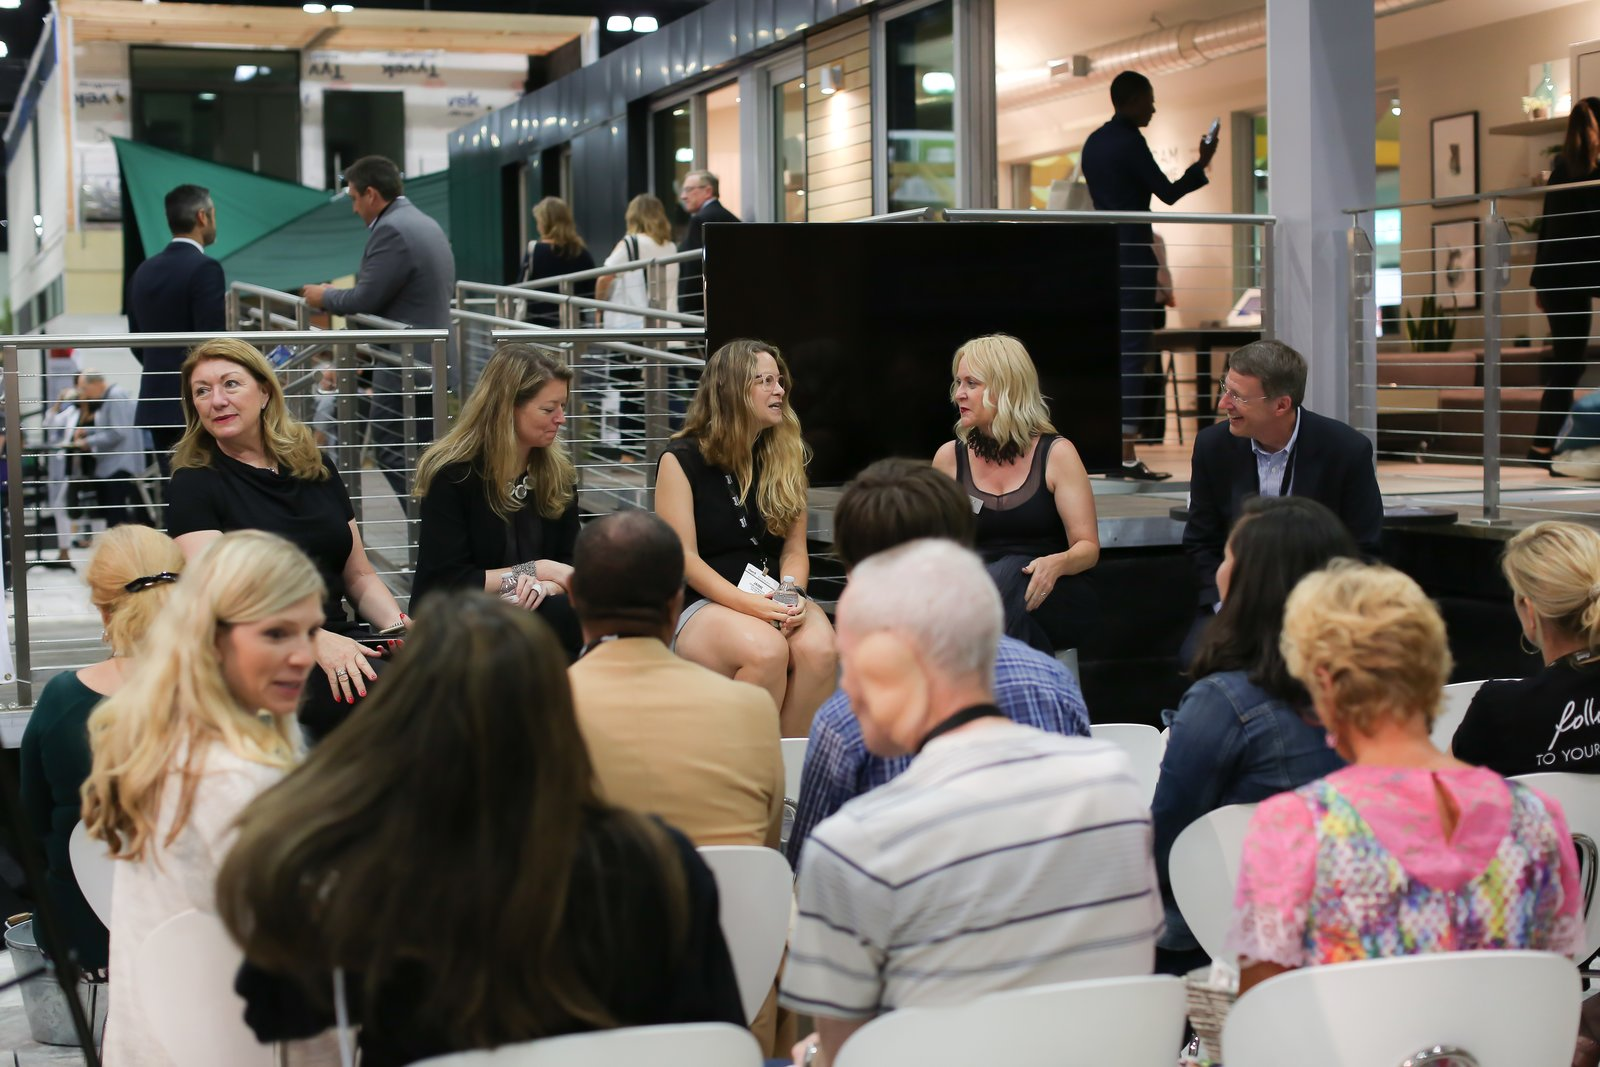 Dwell's president and CEO Michela O'Connor Abrams moderated a panel on the relationship between technology and design. The panelists were (from left to right) Gretchen Hansen, founder and CEO of Decorist; Jaime Derringer, founder and executive editor of Design Milk; Lisa Blecker, director of marketing at Resource Furniture; and Lou Lenzi, director of industrial design at Monogram.  Photo 5 of 6 in Monogram Modern Home Tour Joins the Los Angeles Design Scene